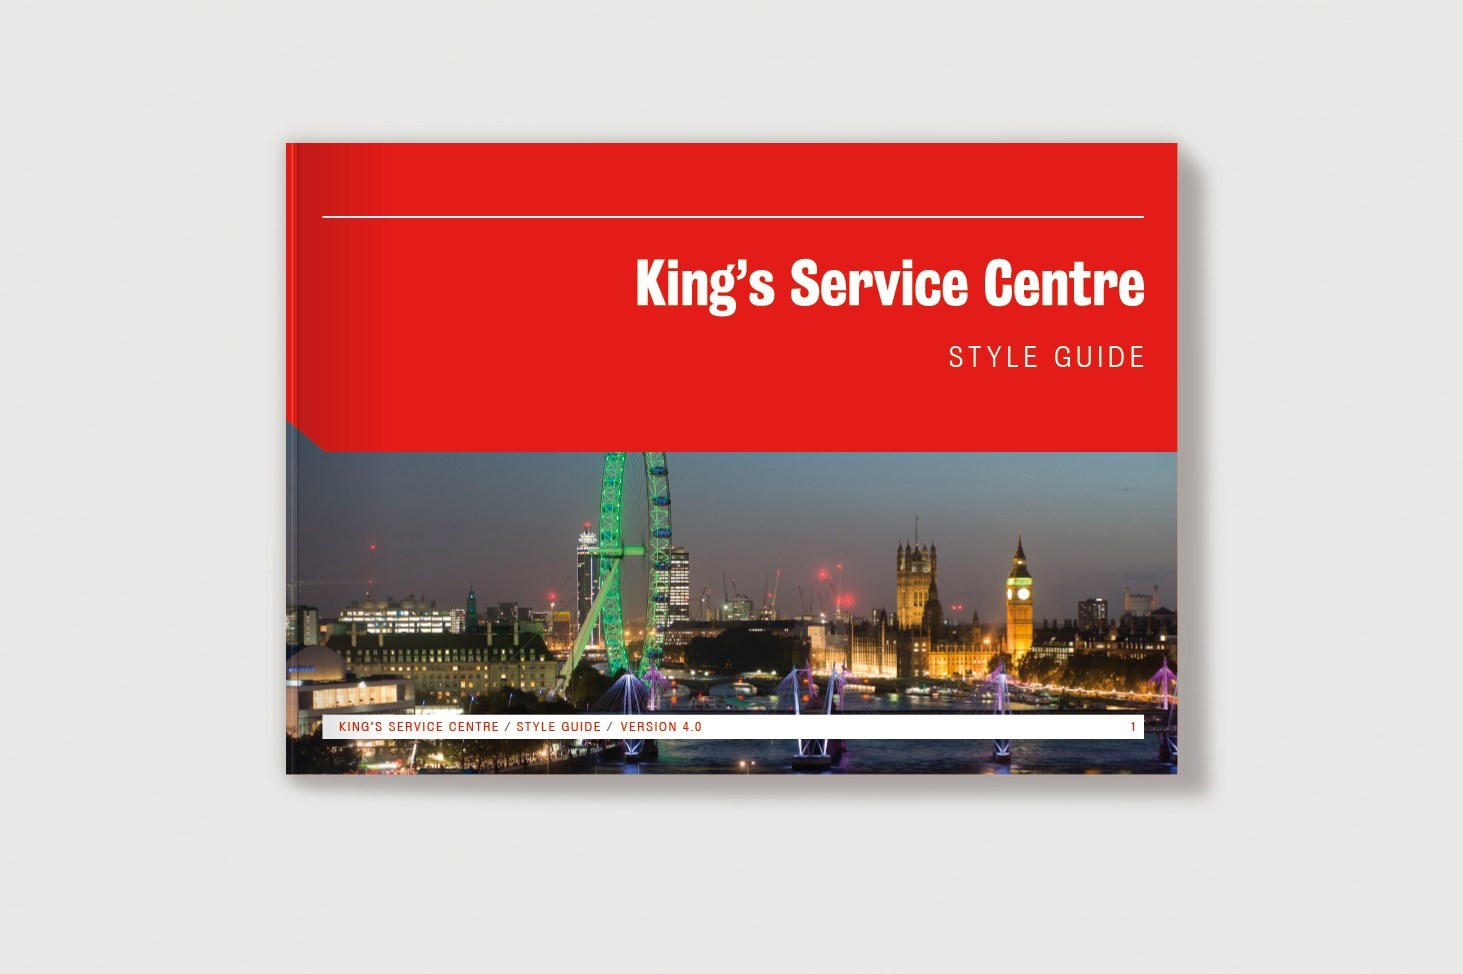 Visual of the style guide for King's Service Centre